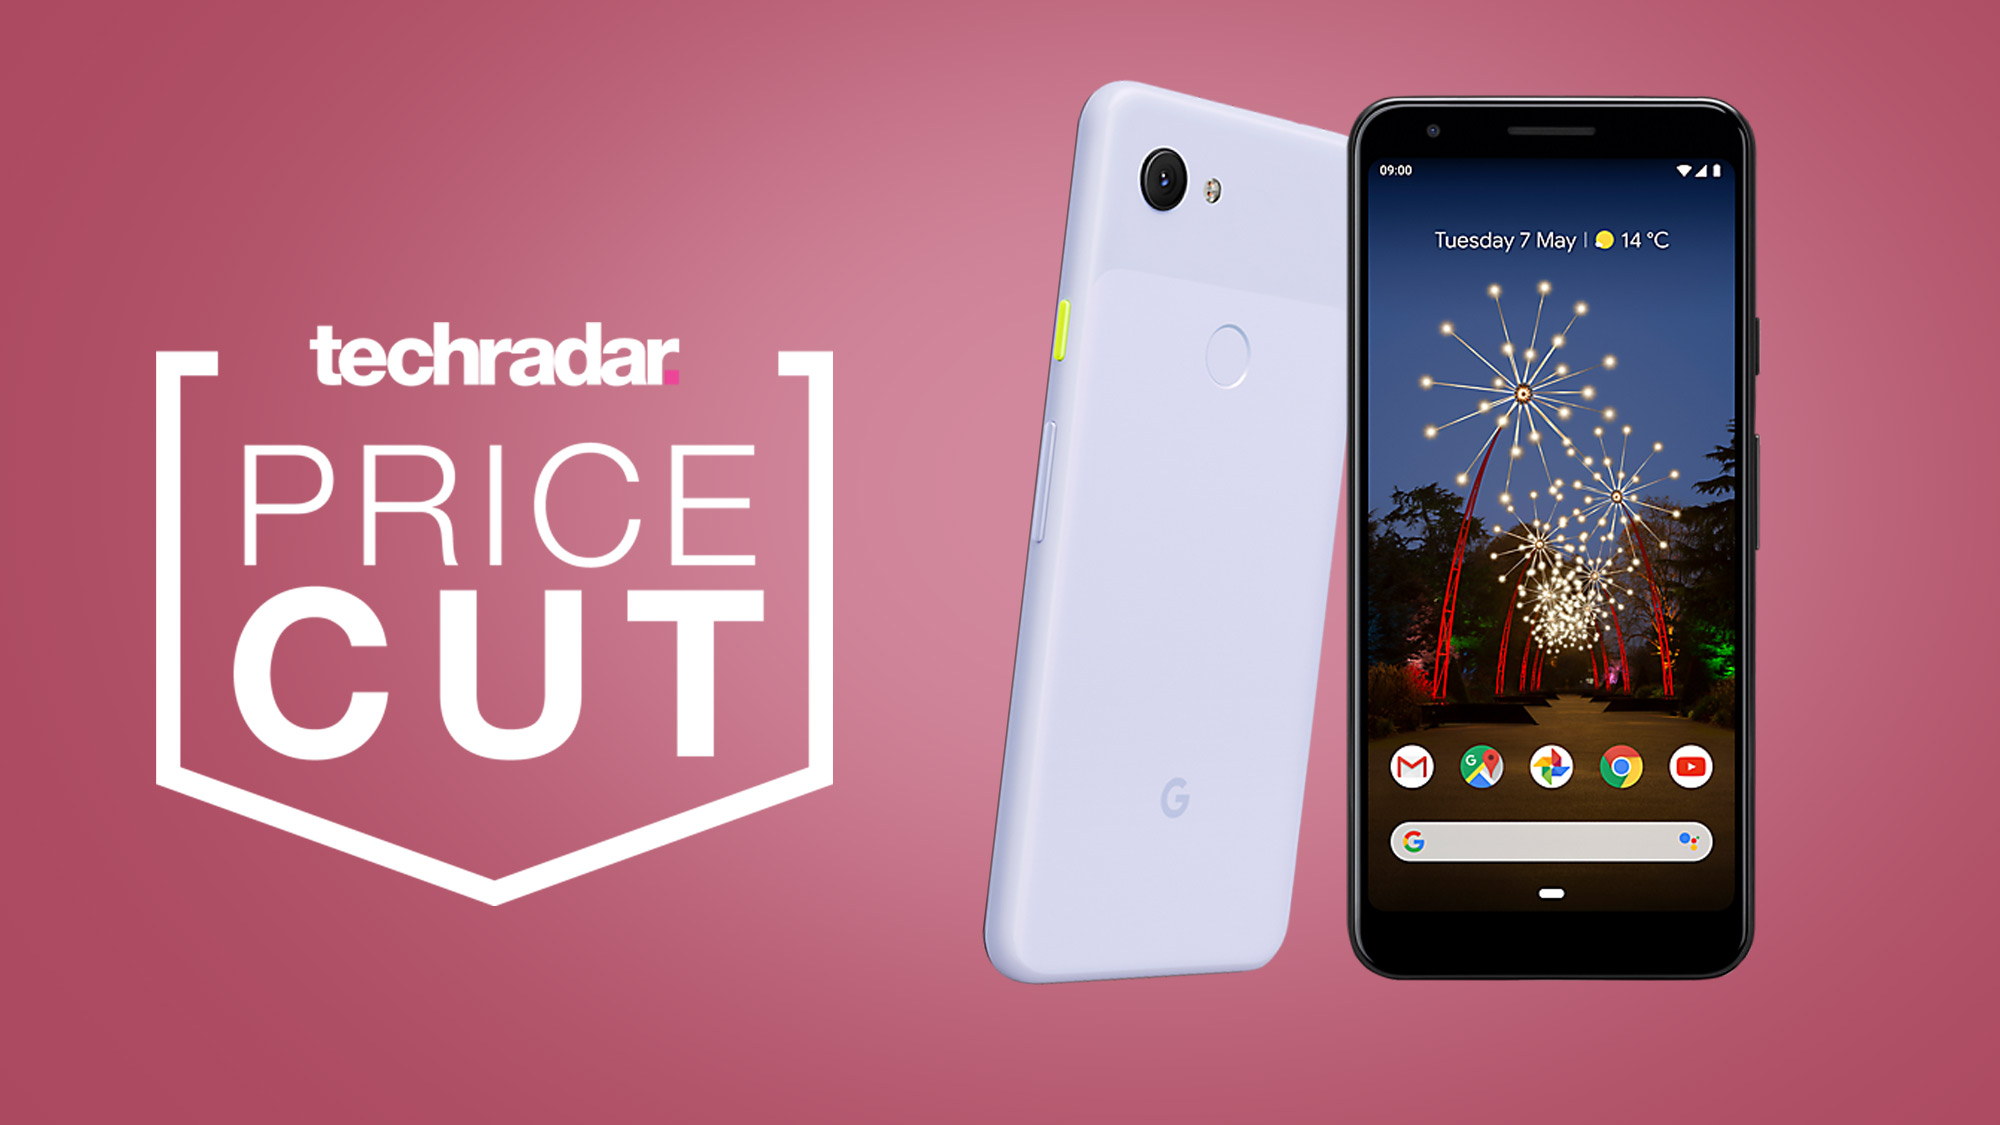 These exclusive Google Pixel 3a deals for Black Friday are still going strong